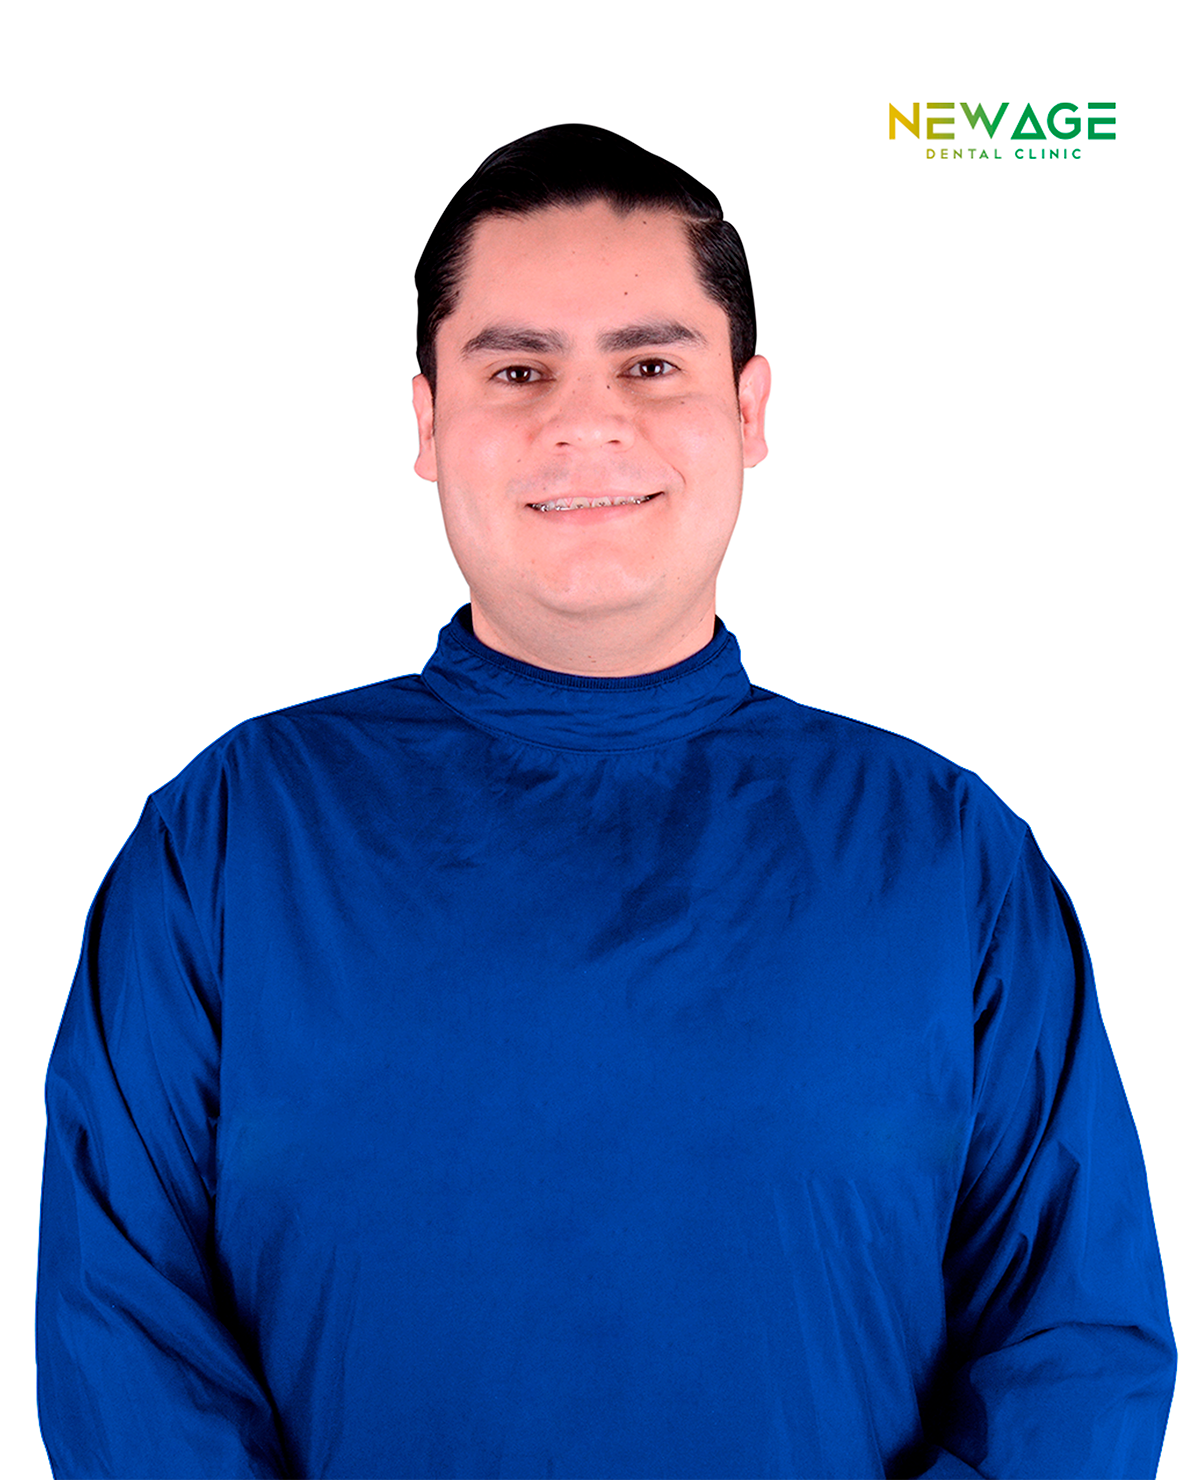 Dr. Manuel Ureña, Oral rehanilitation and Implants Specialist at New Age Dental Clinic in Tijuana